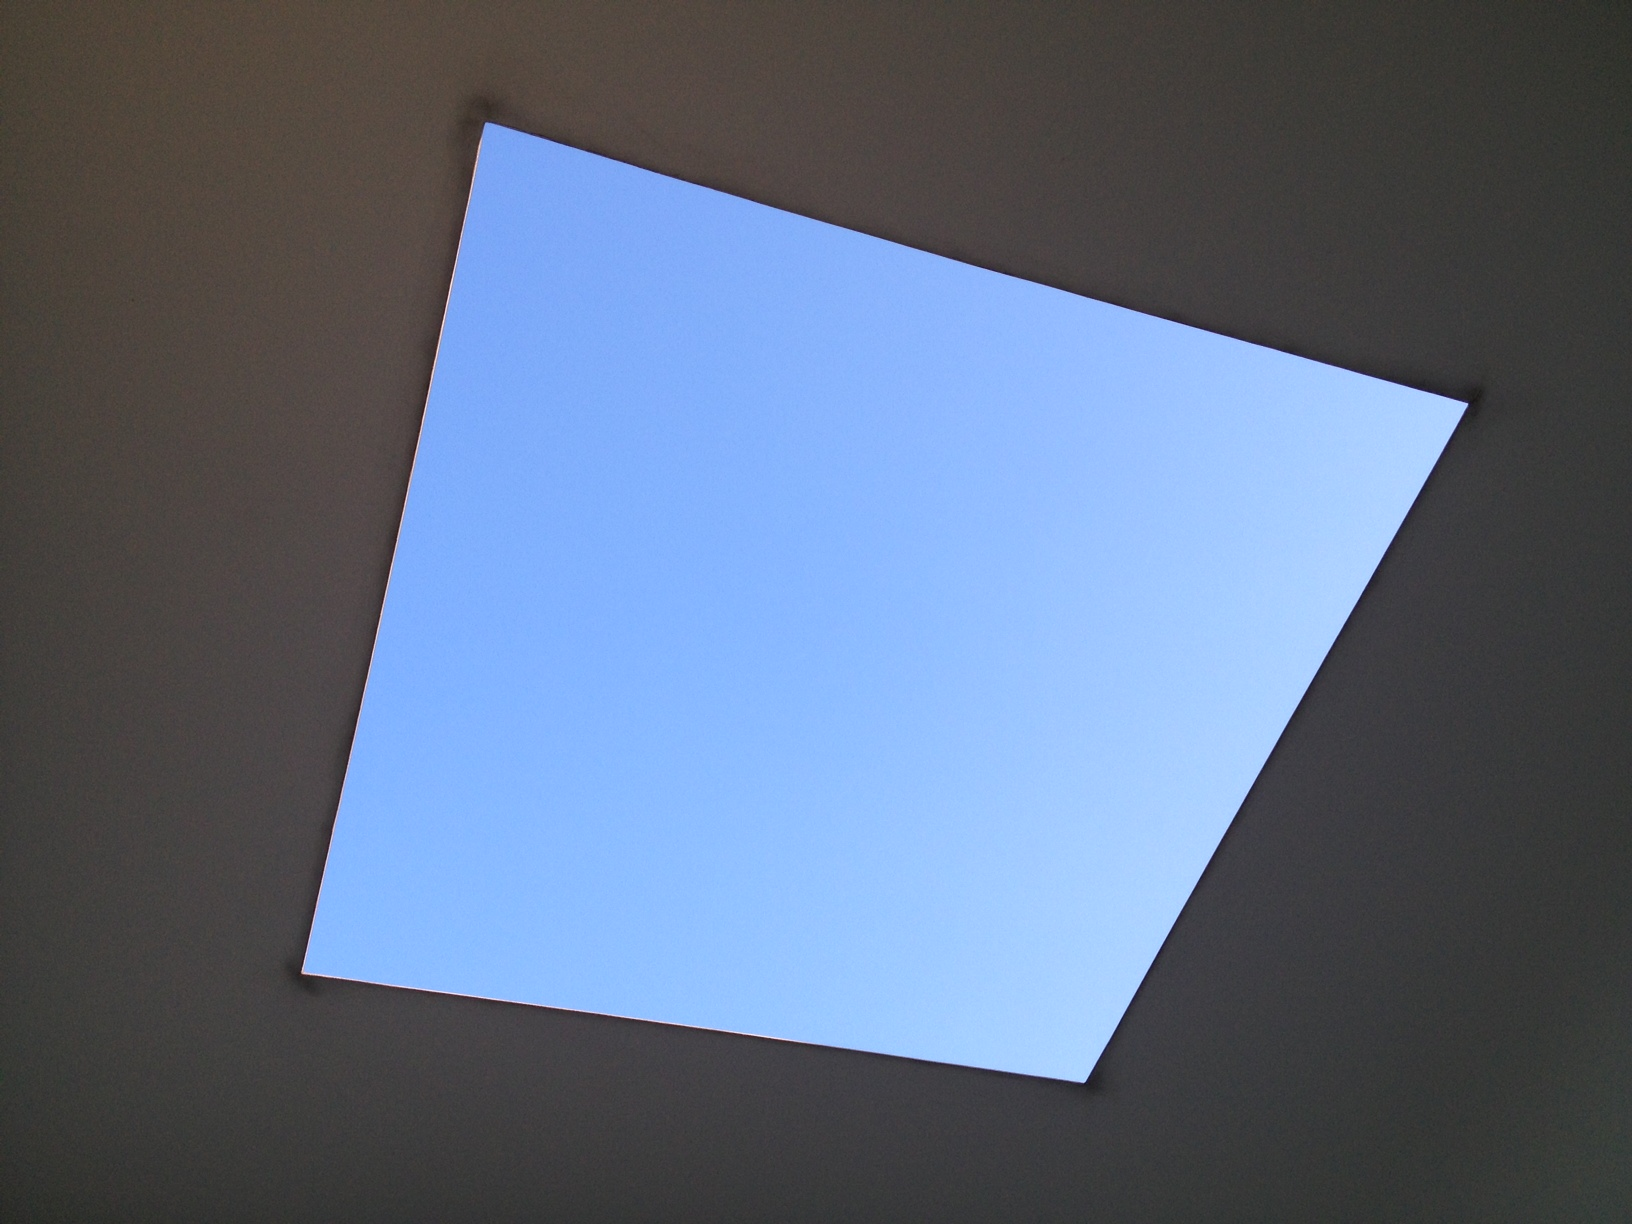 Twilight Epiphany, 2012 by James Turrell. Photo by Kim Tidwell, August 24, 2013